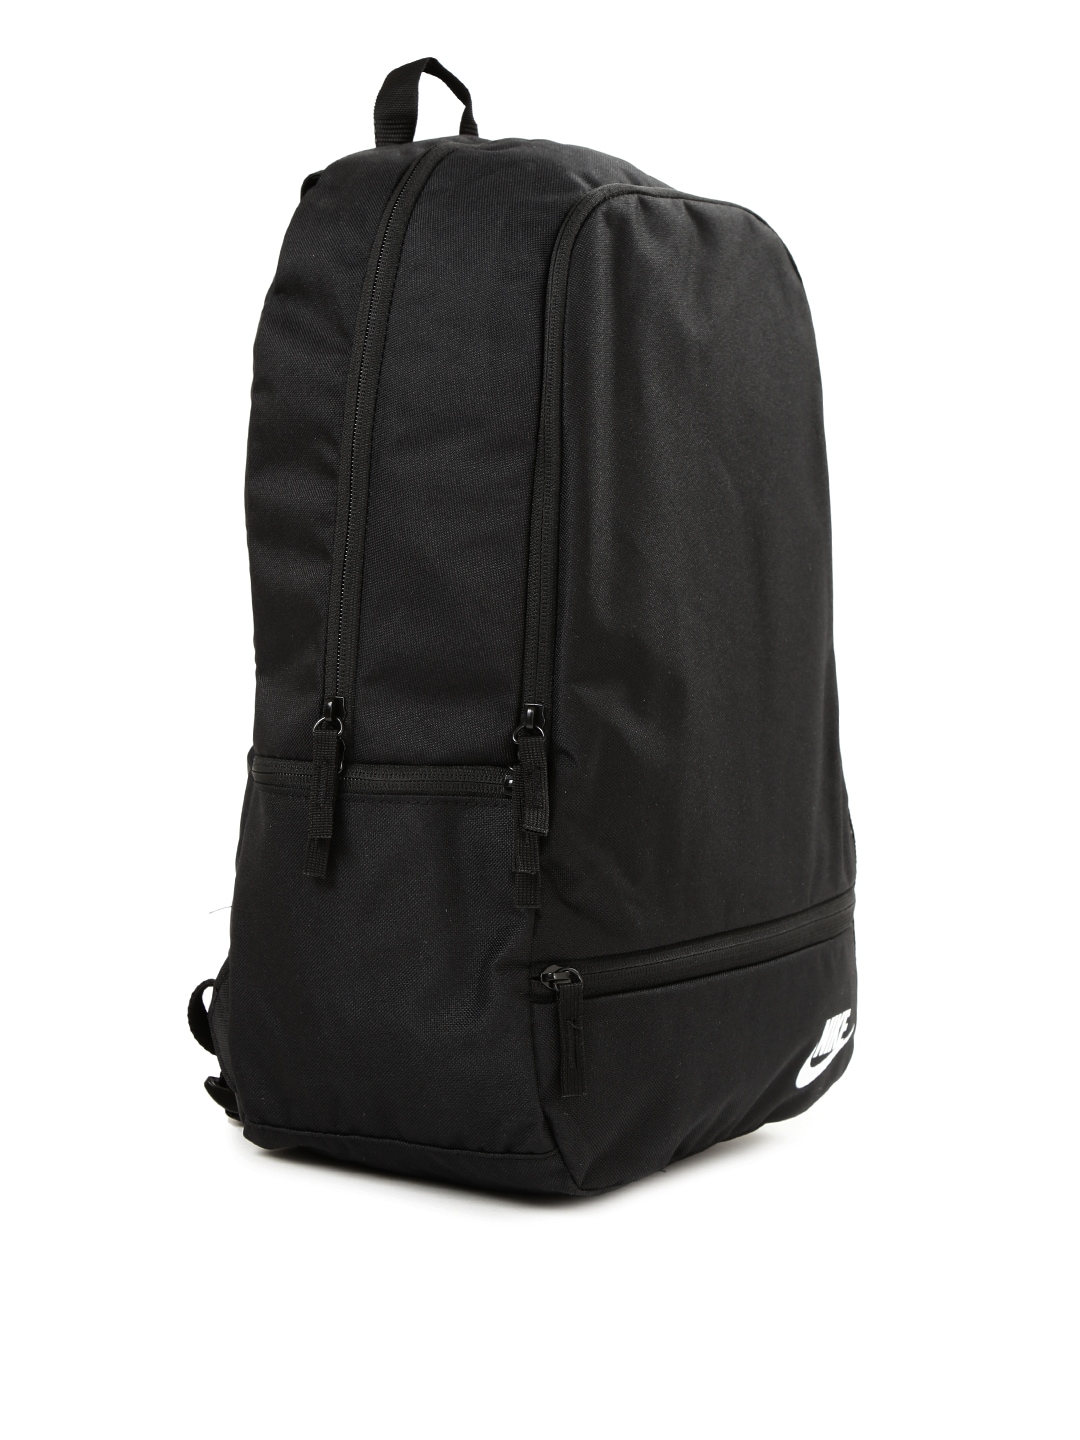 School bag hs code - School Bags And Uniform Accessories At Low